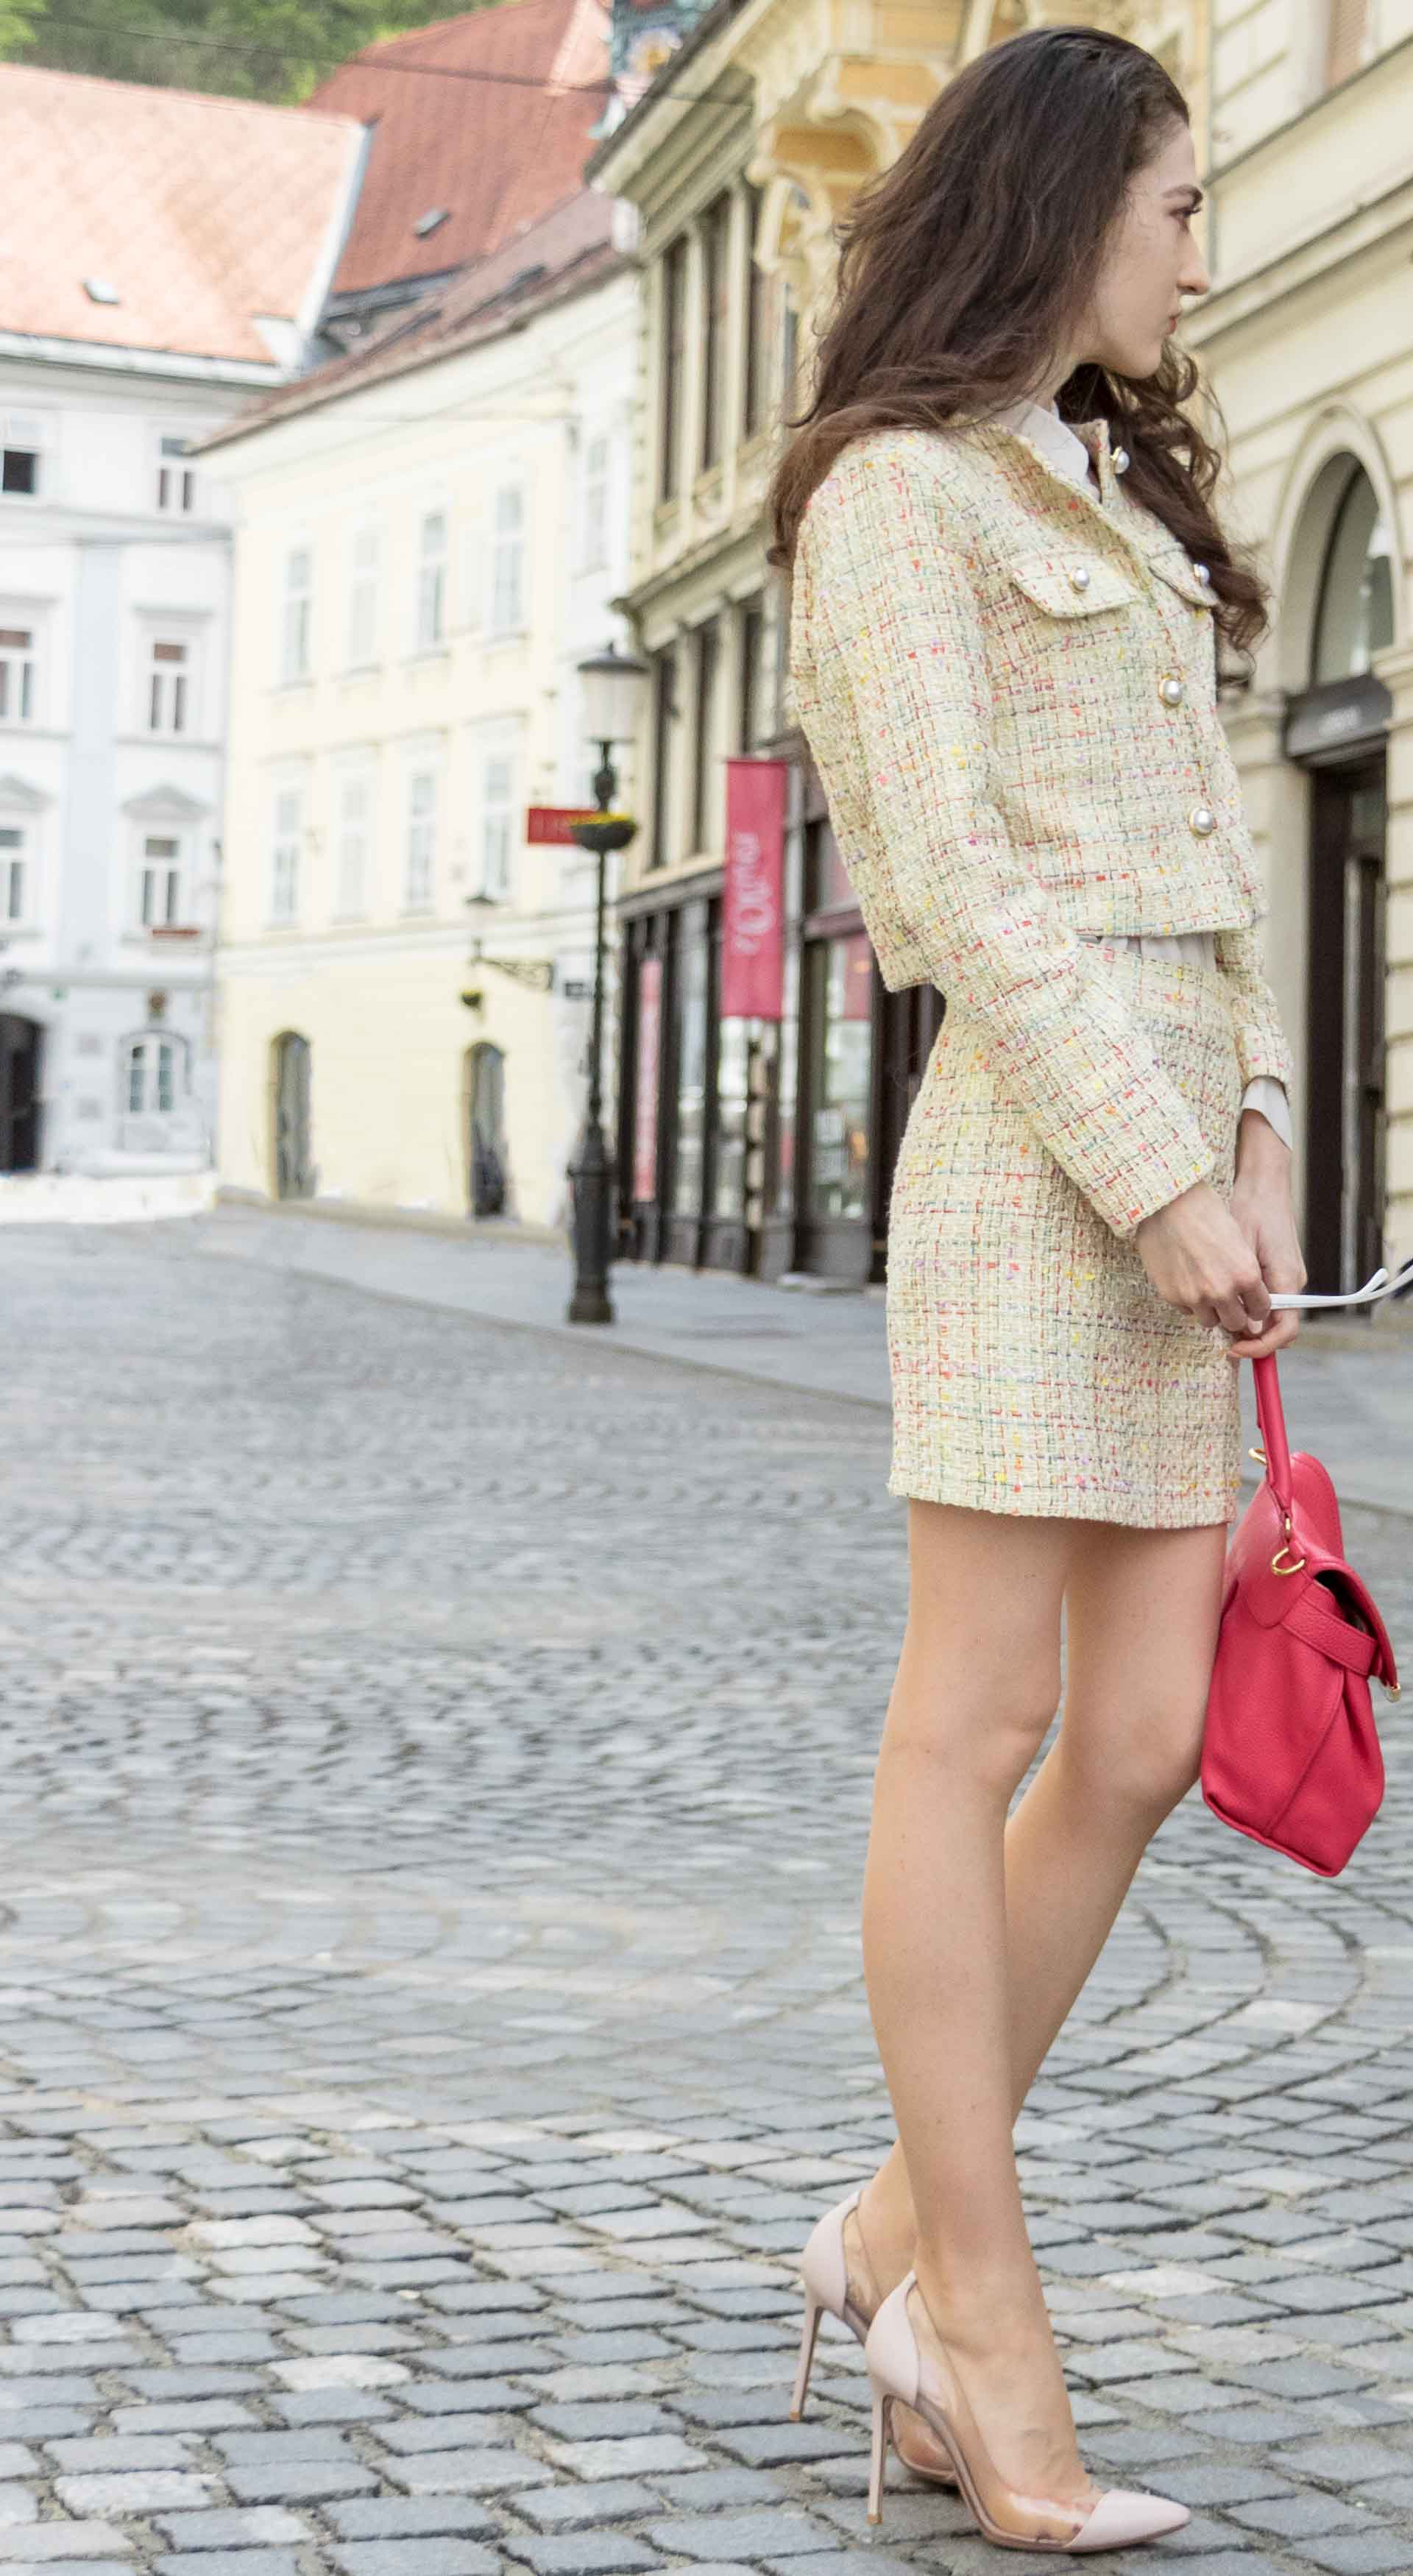 Fashion Blogger Veronika Lipar of Brunette from Wall Street wearing Storets yellow tweed mini skirt suit, Gianvito Rossi plexi pumps, See by Chloe pink top handle bagfor doctor's appointment